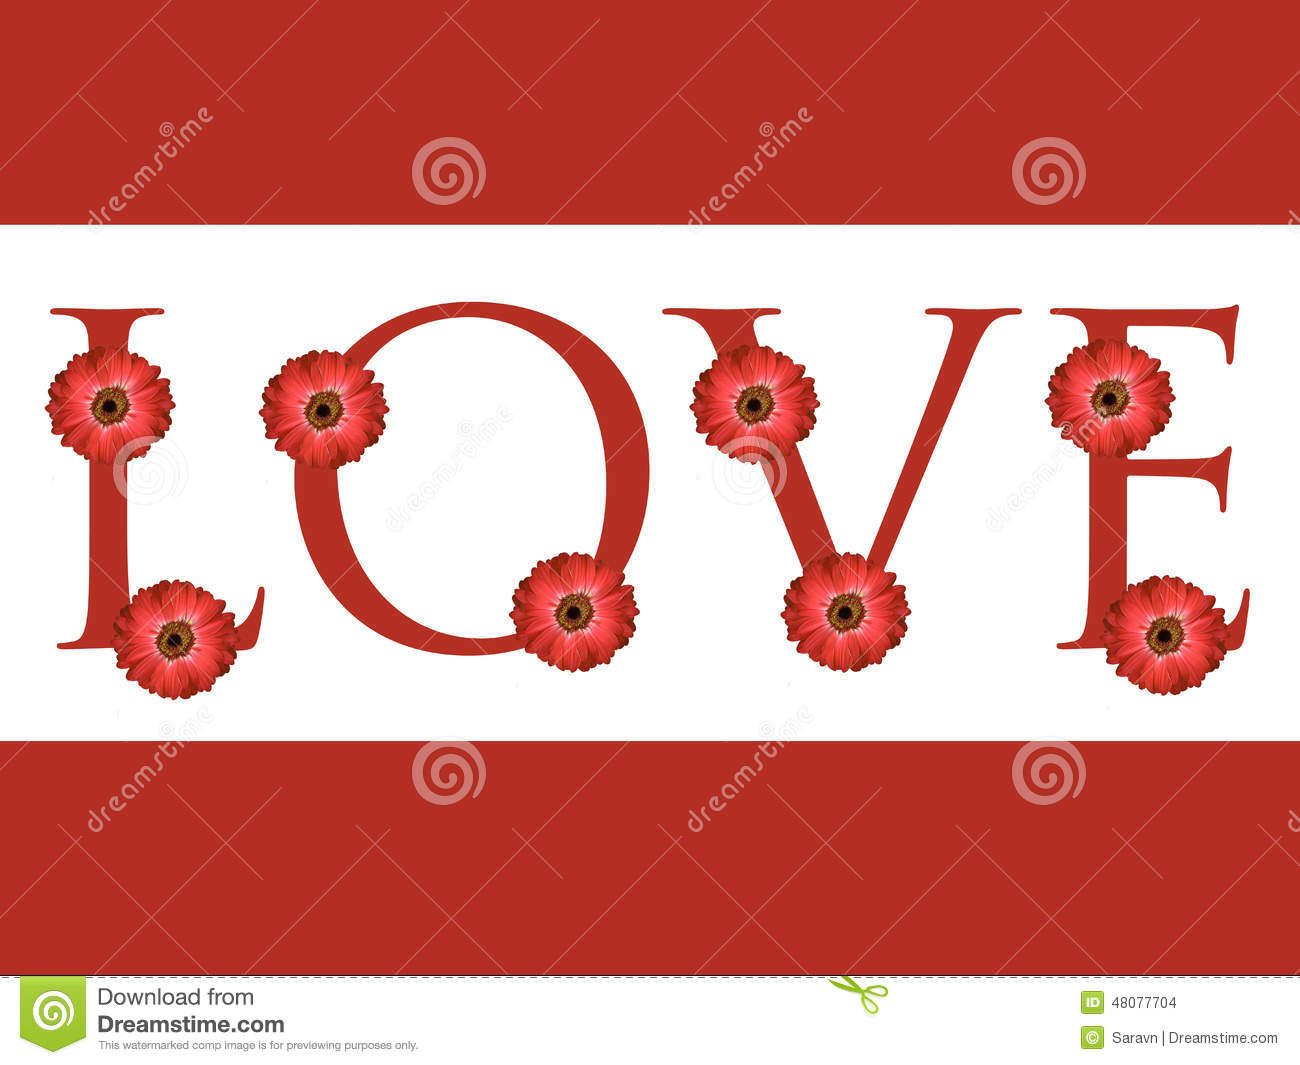 multiple red daisy flower love letter design valentines day card background